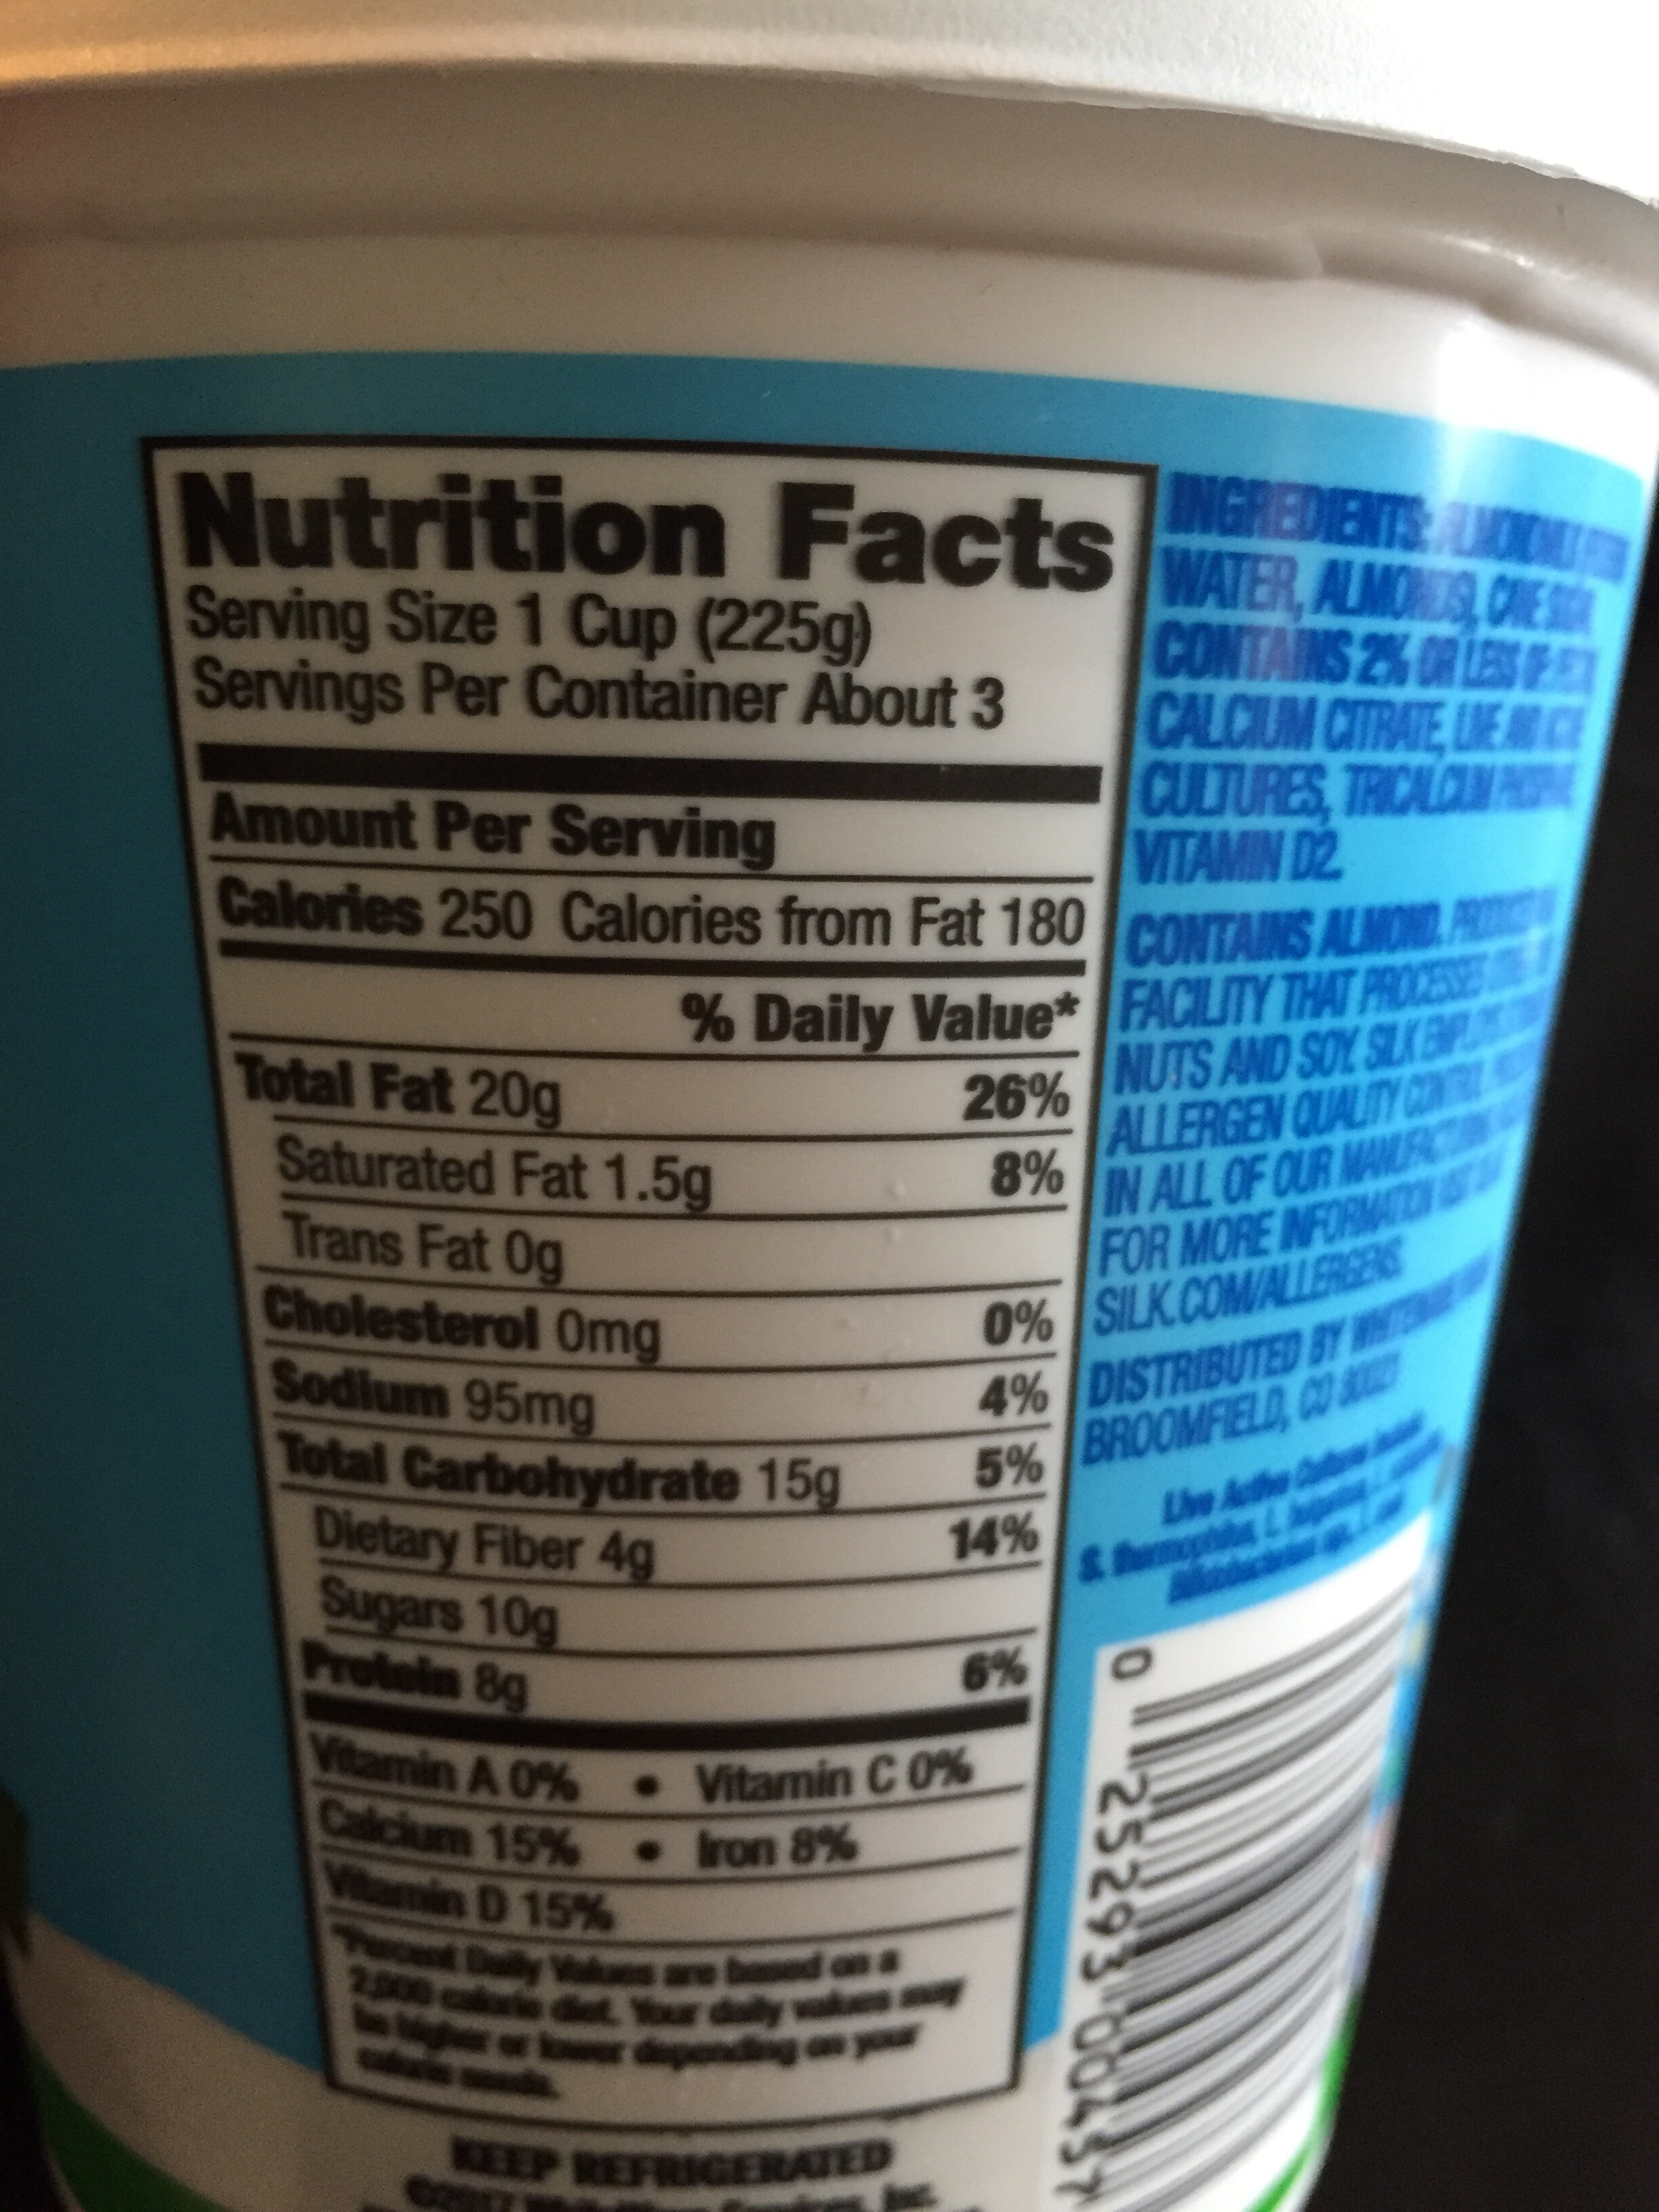 Almondmilk yogurt alternative, plain - Nutrition facts - en